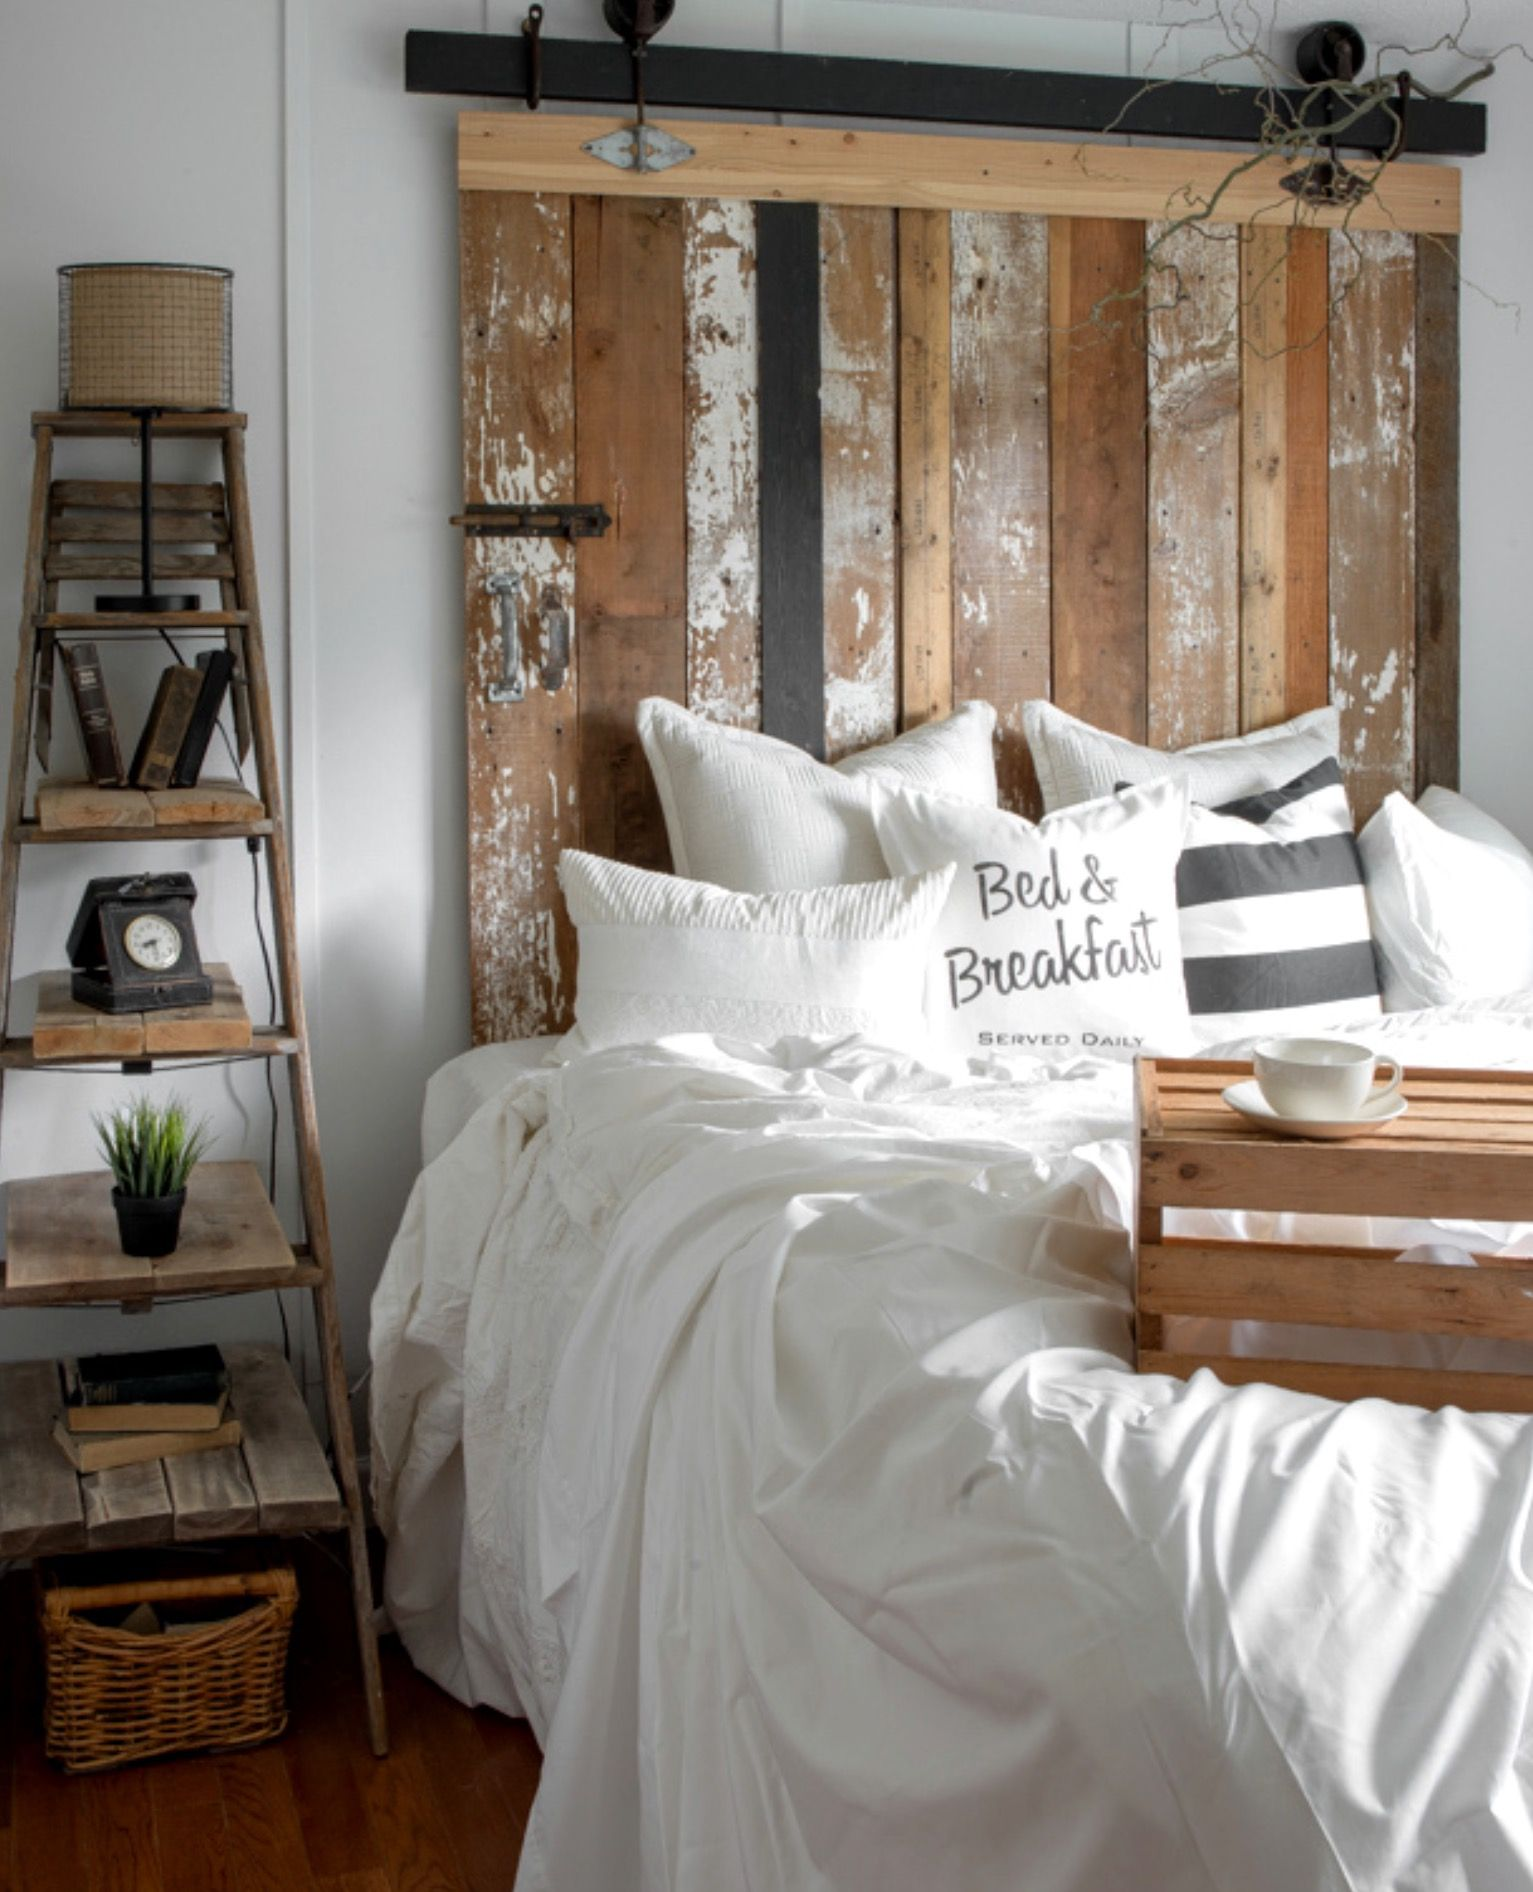 A Cheater Reclaimed Wood Barn Door Headboard With Faux Hardware Bed Breakfast Diy Pillow Made Funky Junk S Old Sign Stencils